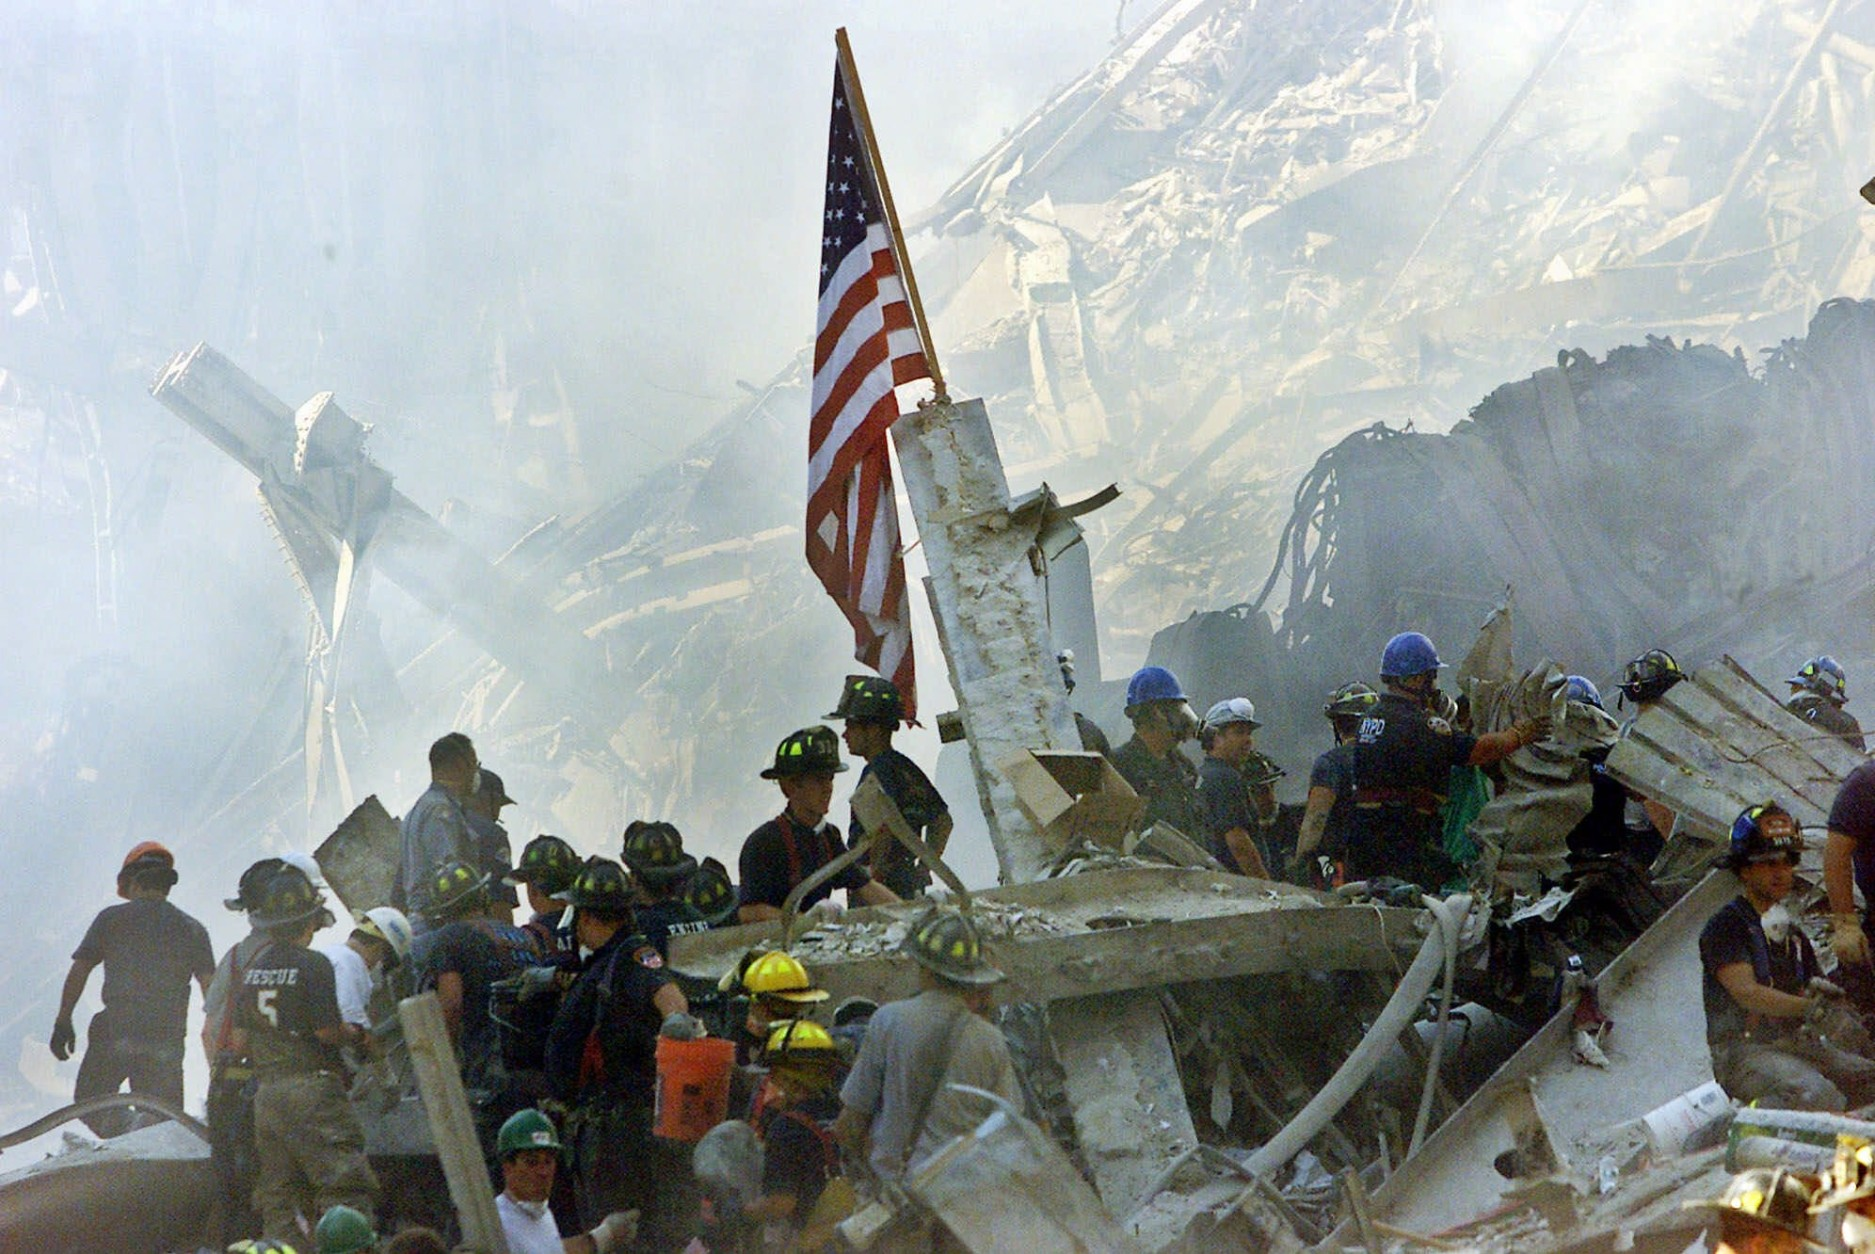 FILE - In this Sept. 13, 2001 file photo, a U.S. flag flies over the rubble of the collapsed World Trade Center buidlings in New York. Experts say there may be nowhere else in the world where flags stir more intense feelings than in the United States. (AP Photo/Beth A. Keiser)